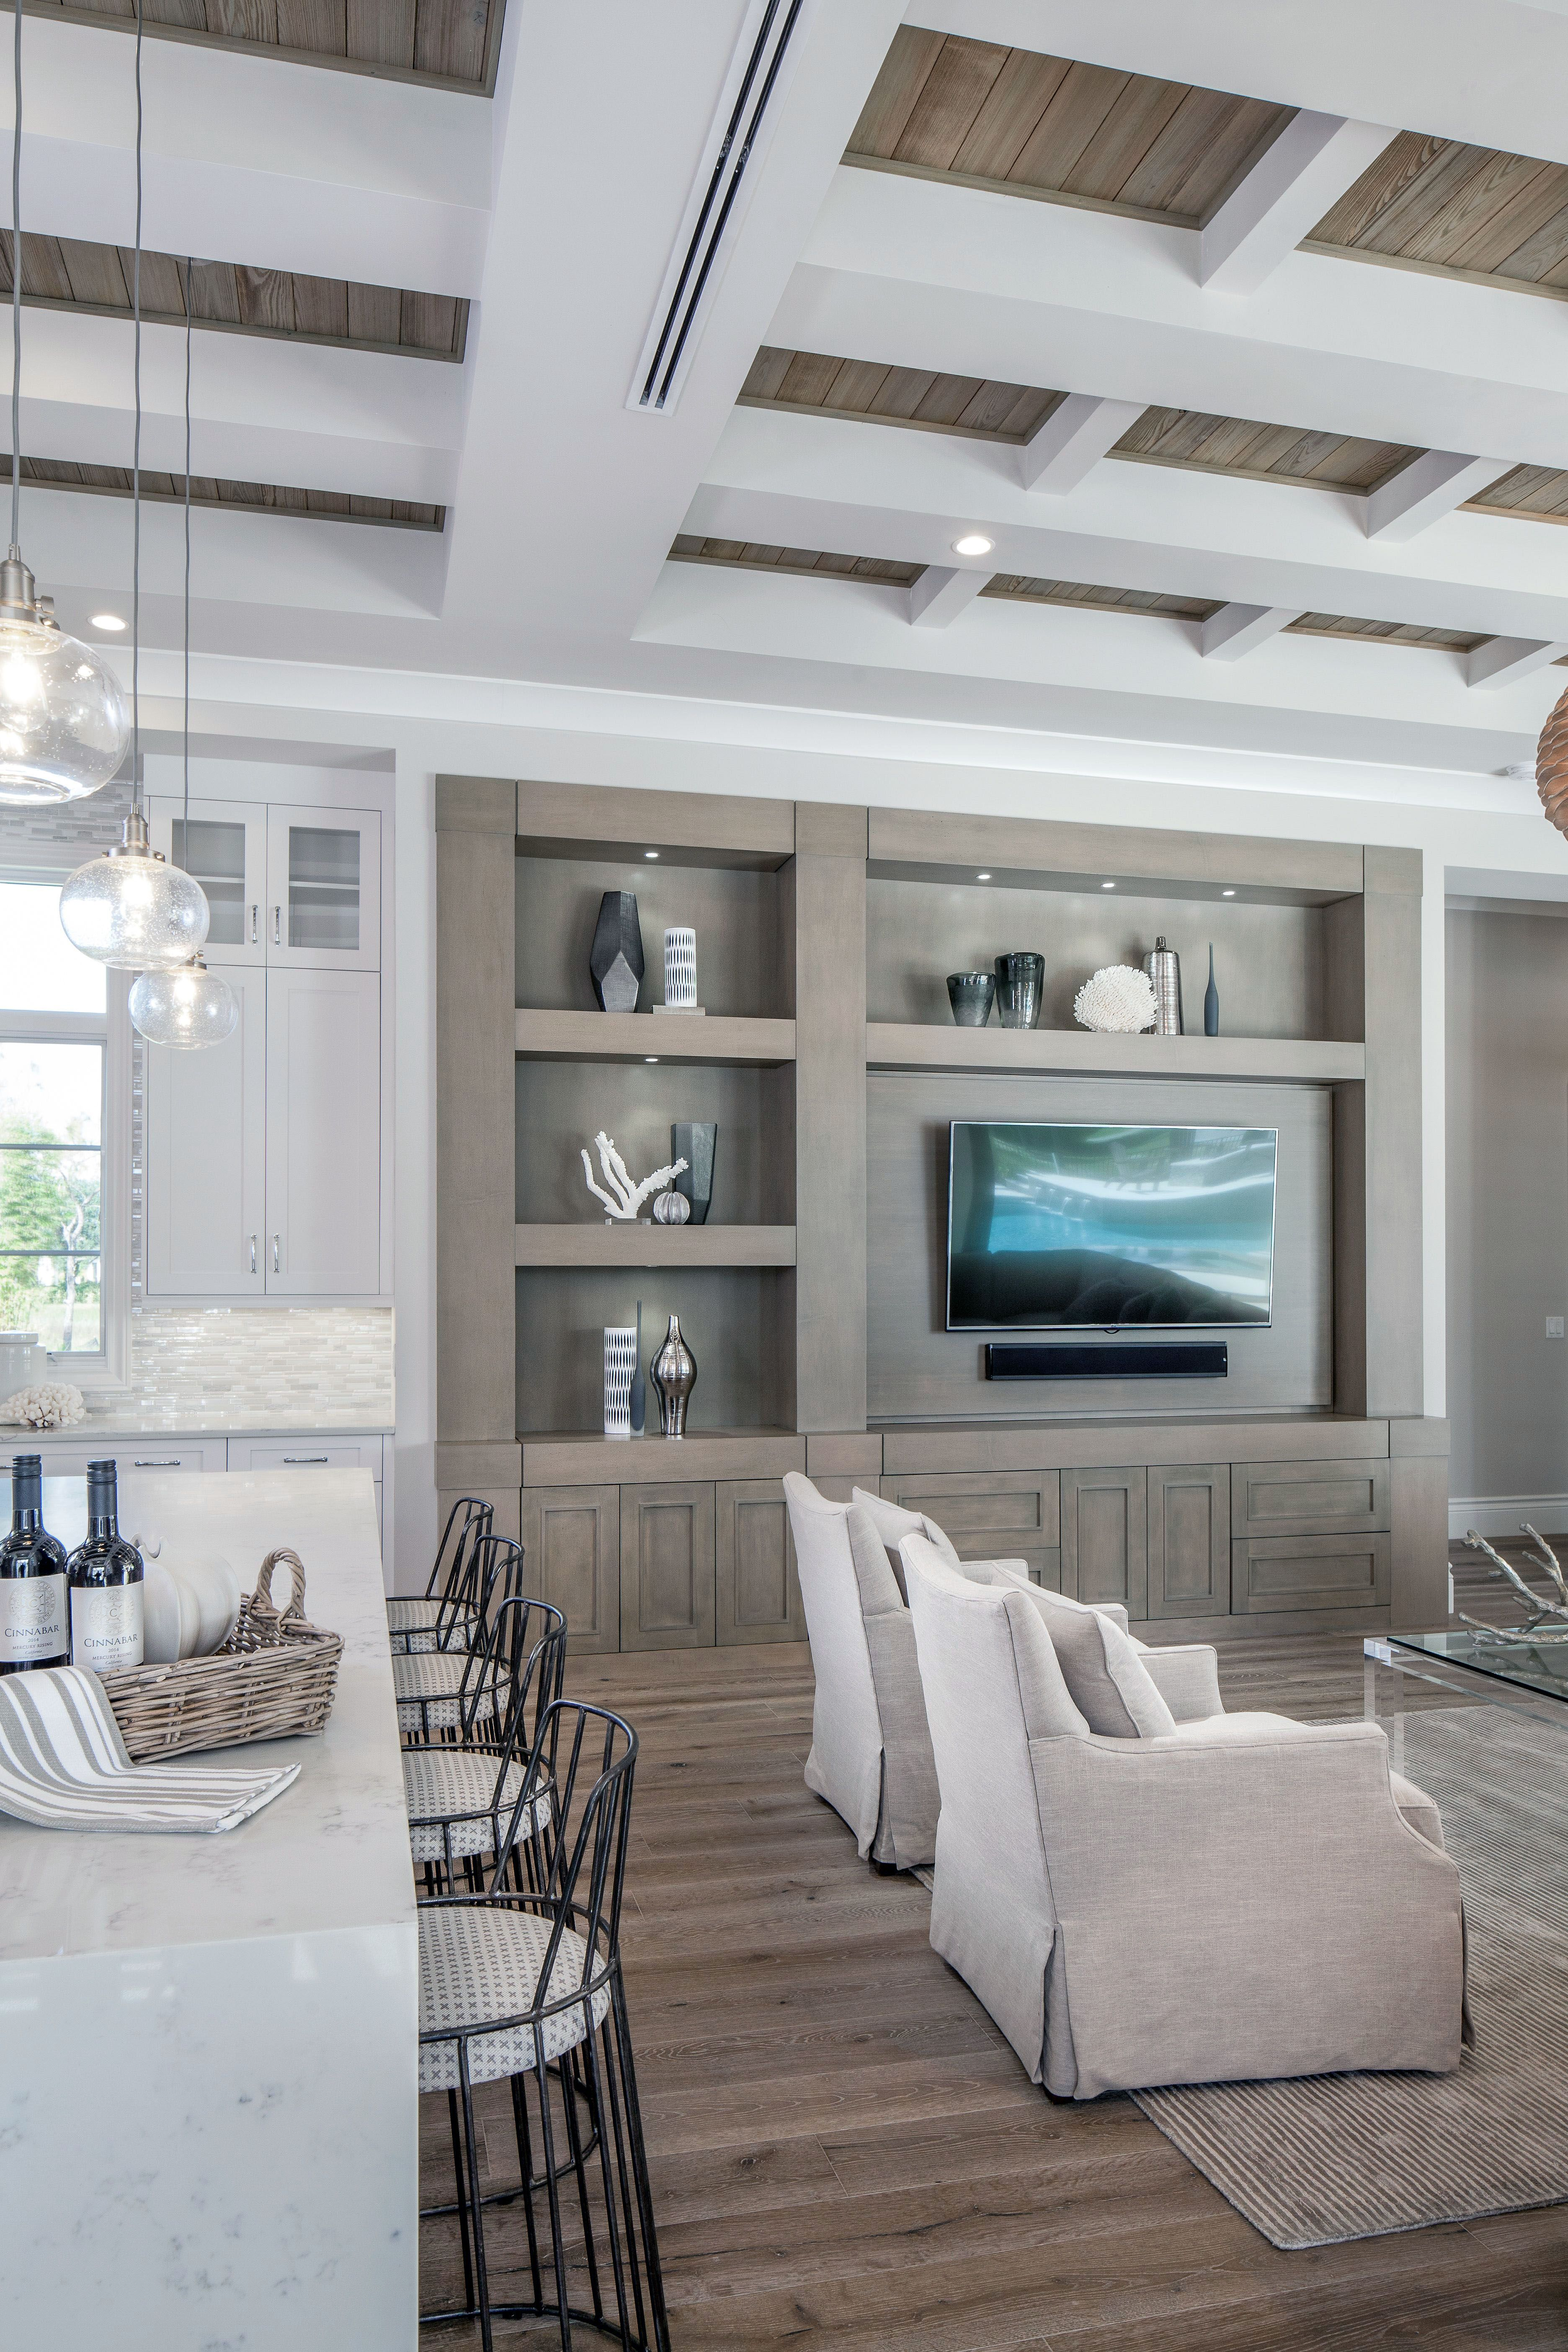 Open Concept Kitchens And Living Spaces With Flow With Images